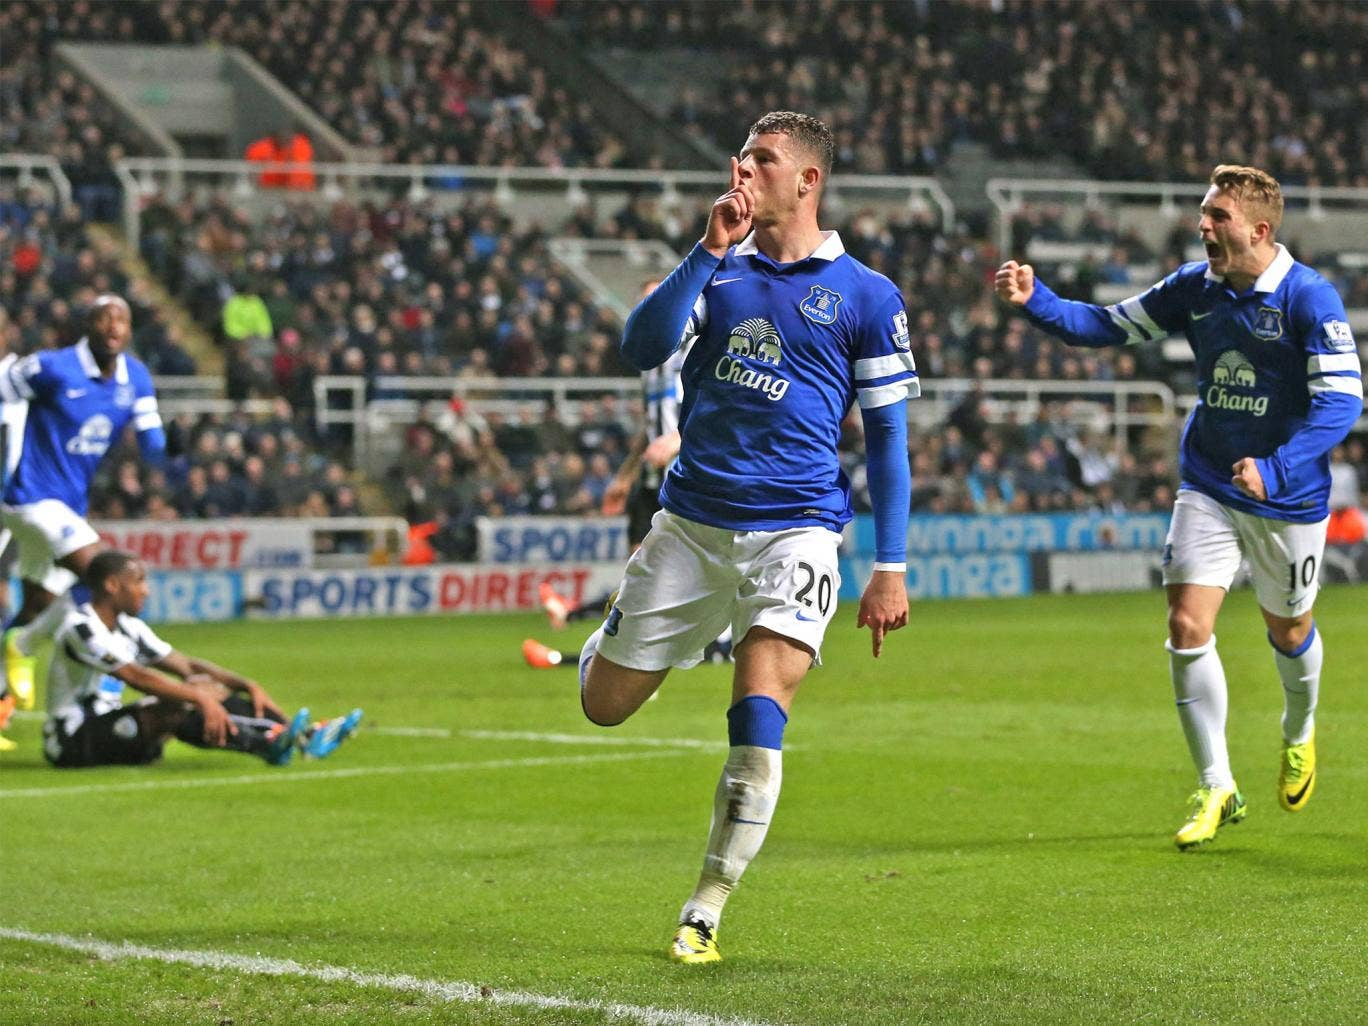 Ross Barkley silenced the Newcastle home fans after 22 minutes